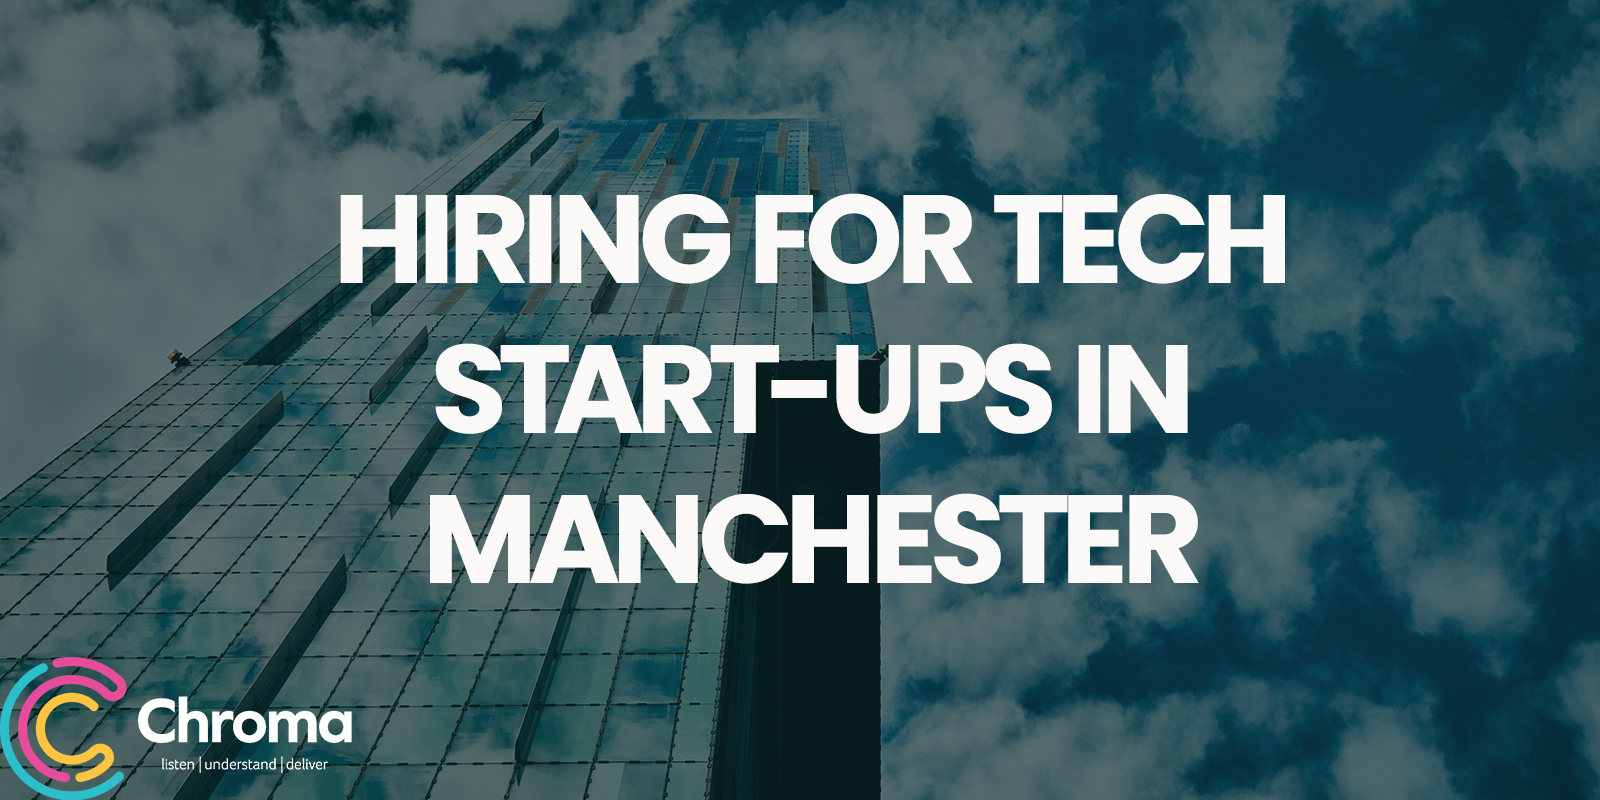 Hiring for tech start-ups in Manchester